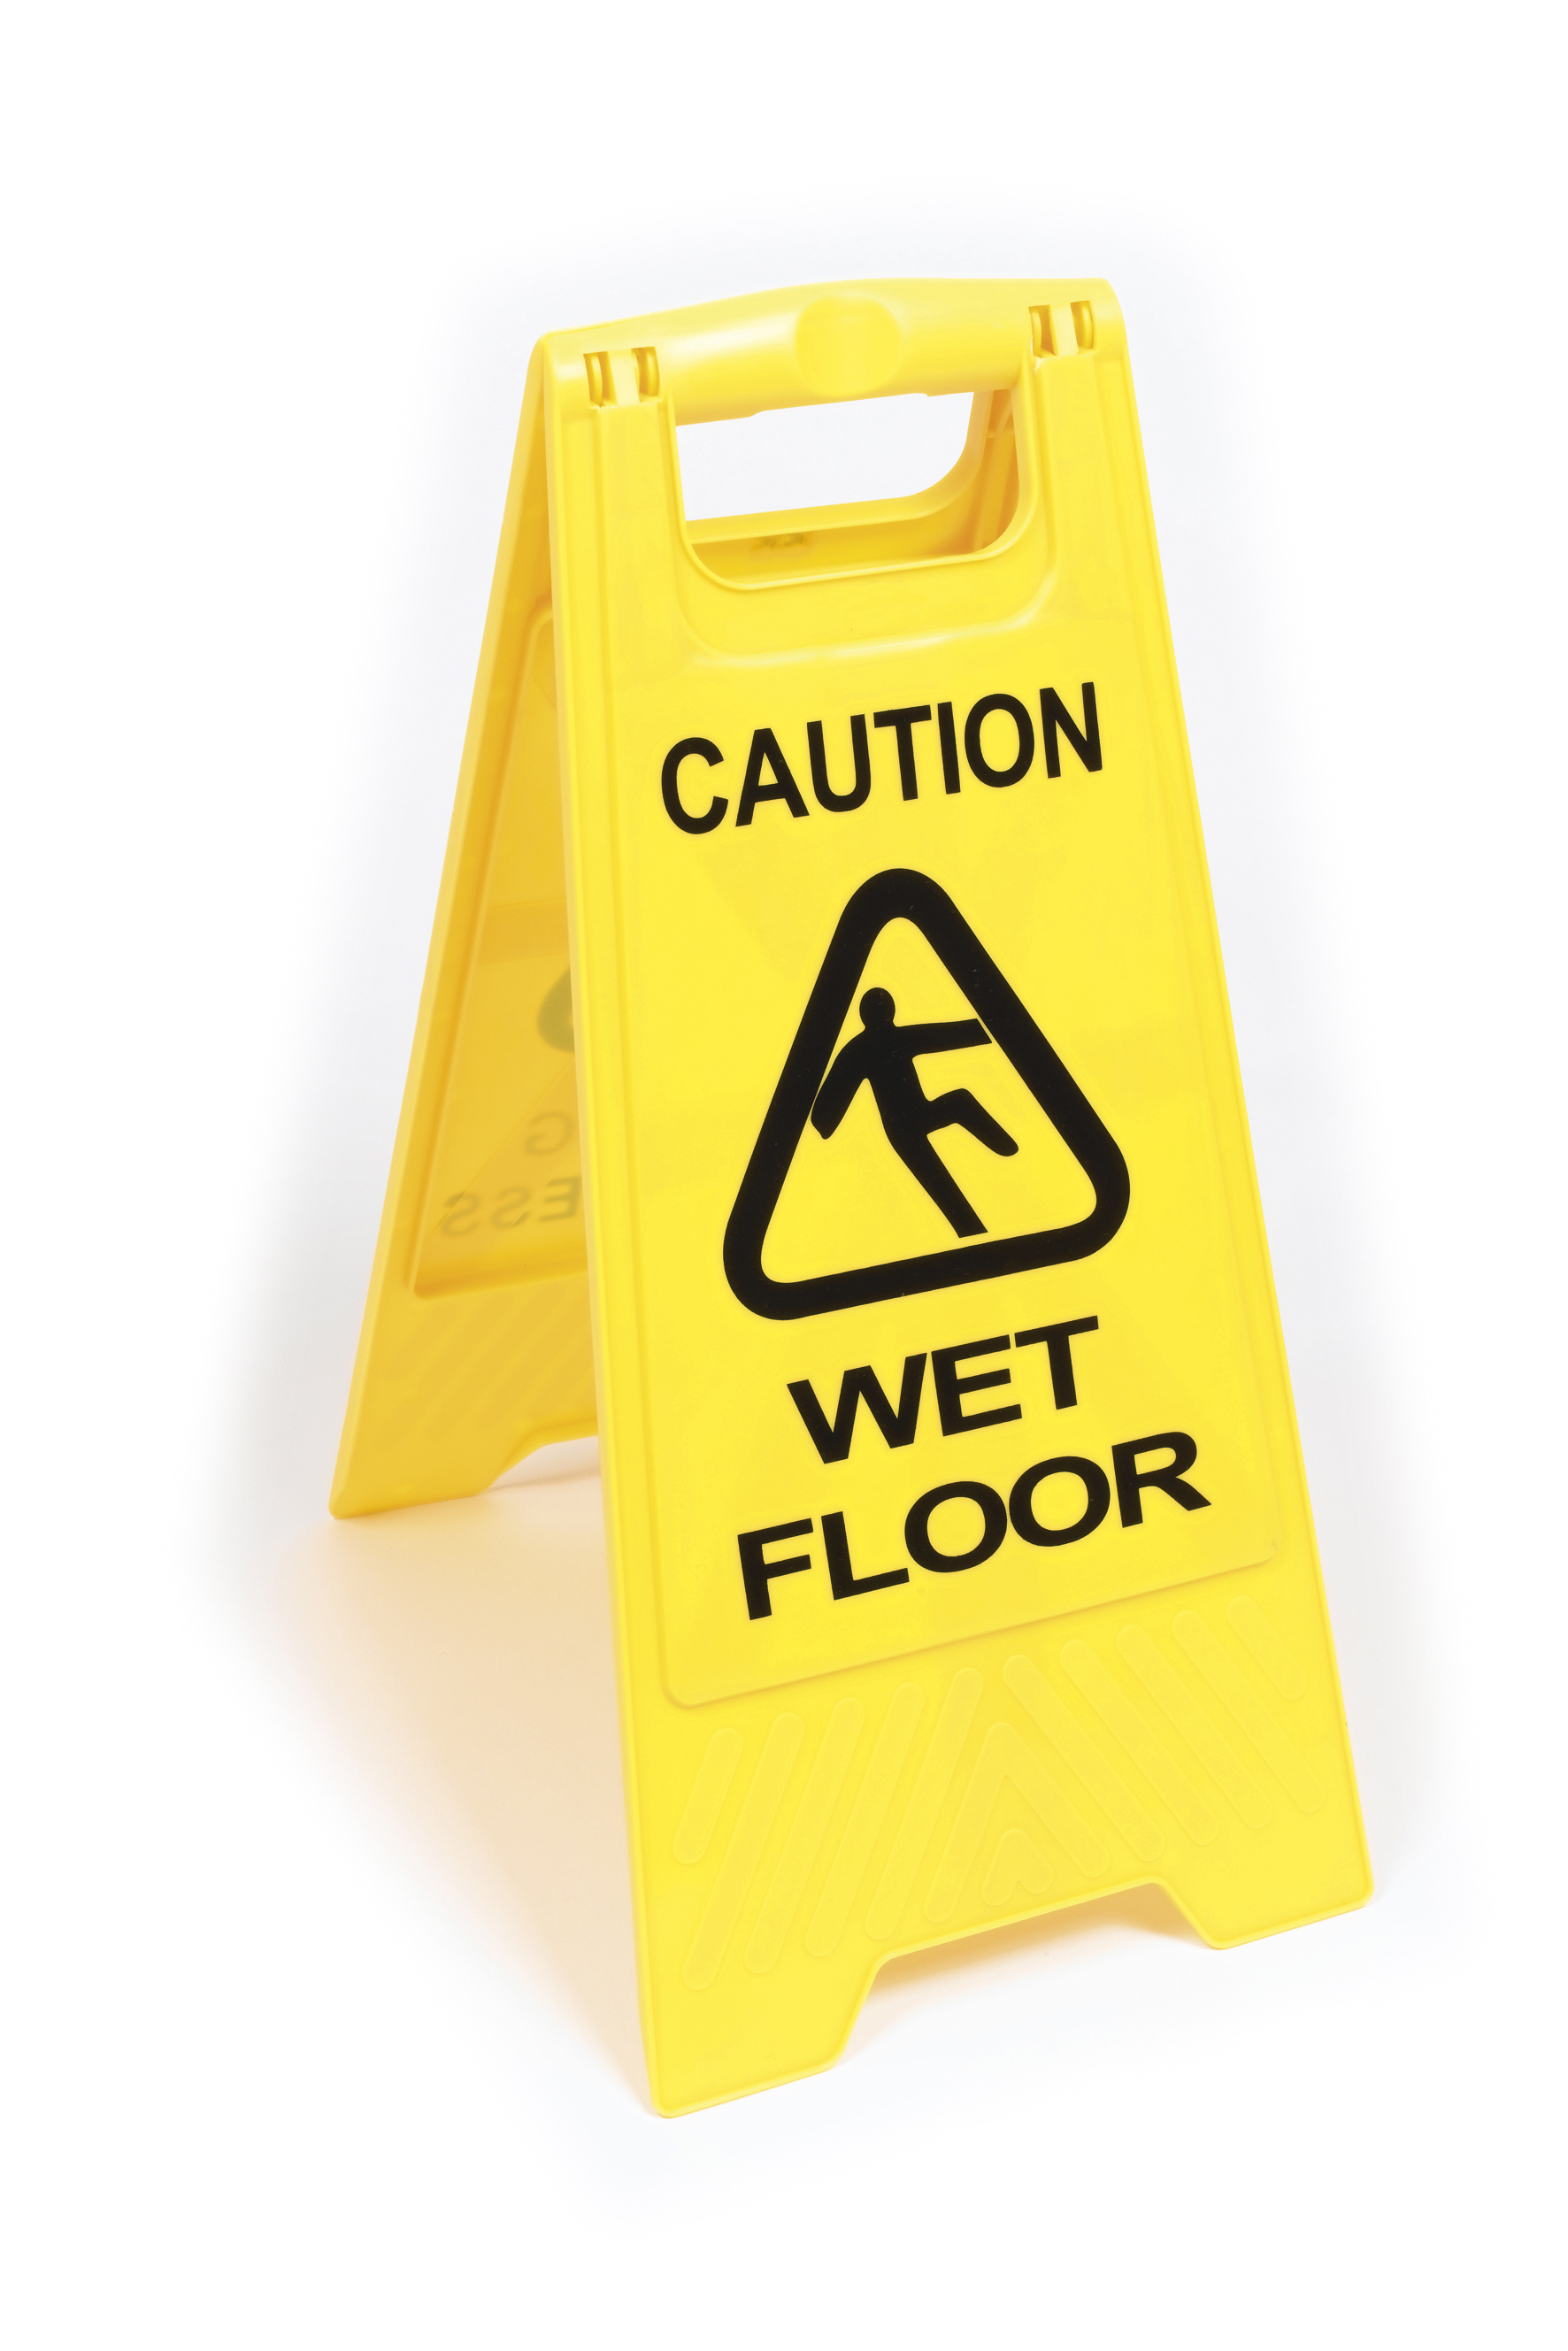 Caution clipart caution wet floor. Sign for charming on